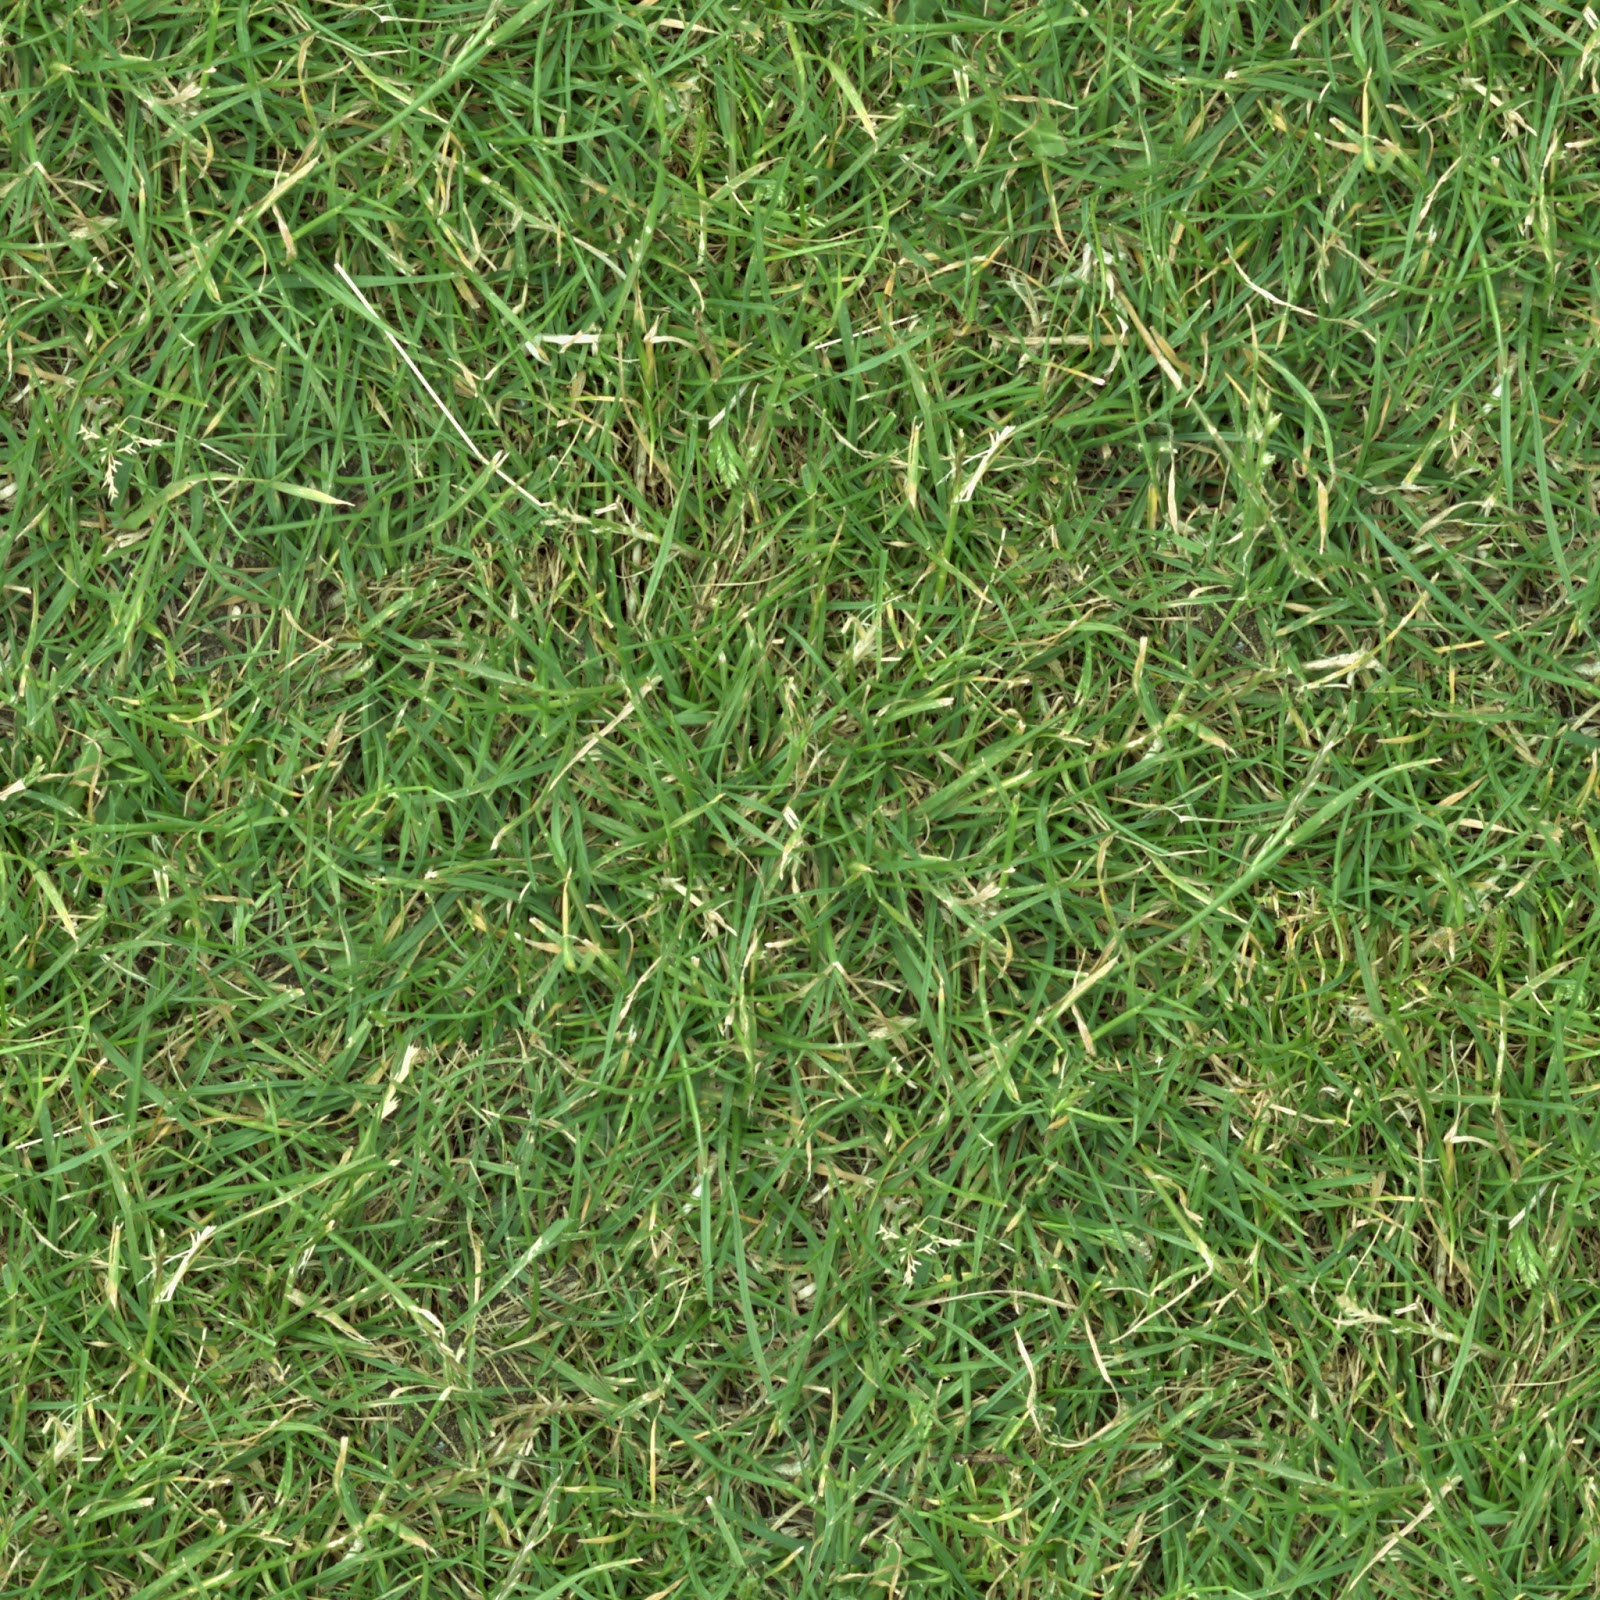 Grass turf lawn green ground field seamless texture 2048x2048